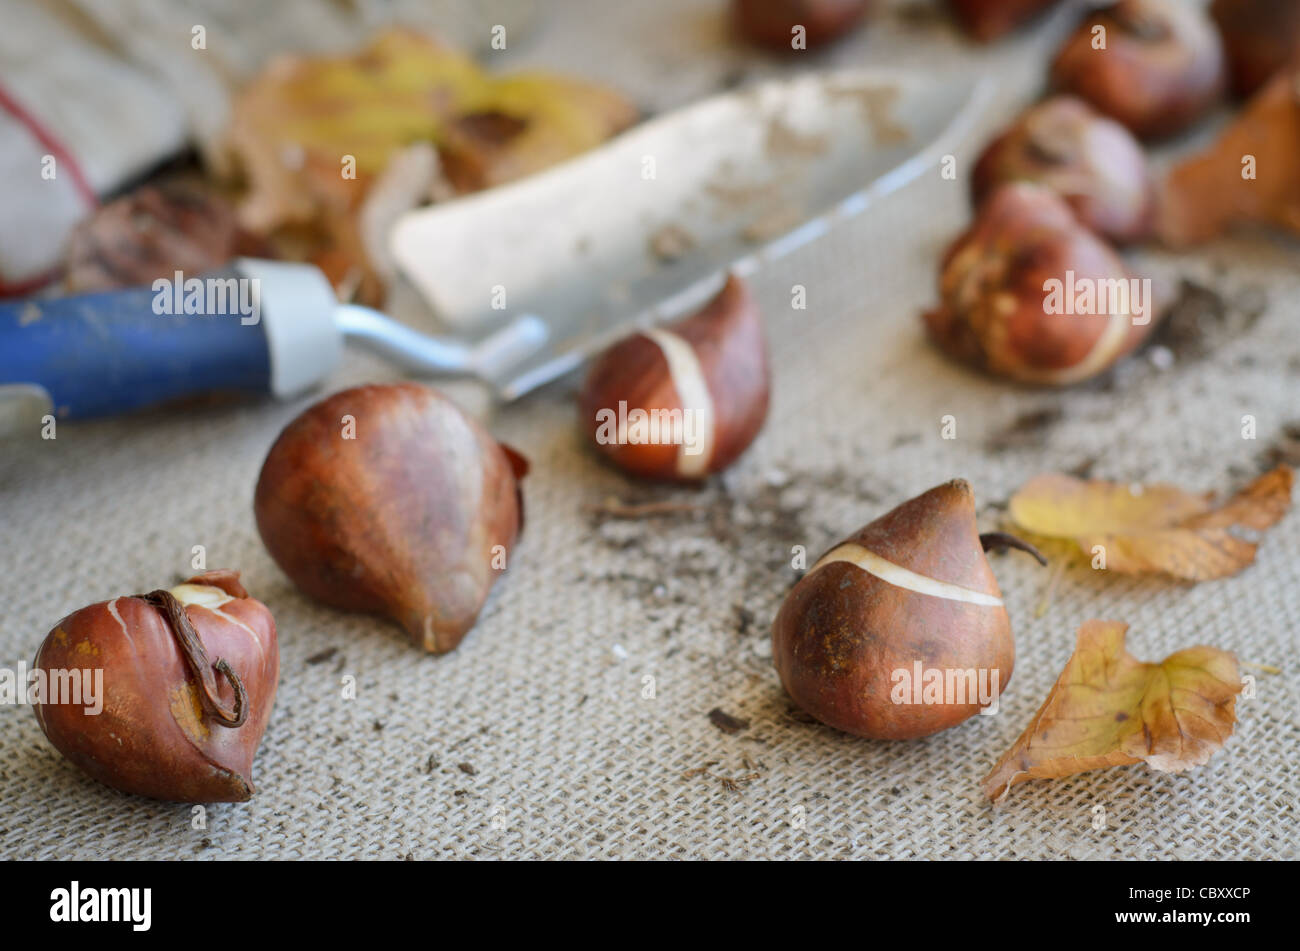 Tulip bulbs being readied for Fall planting - Stock Image